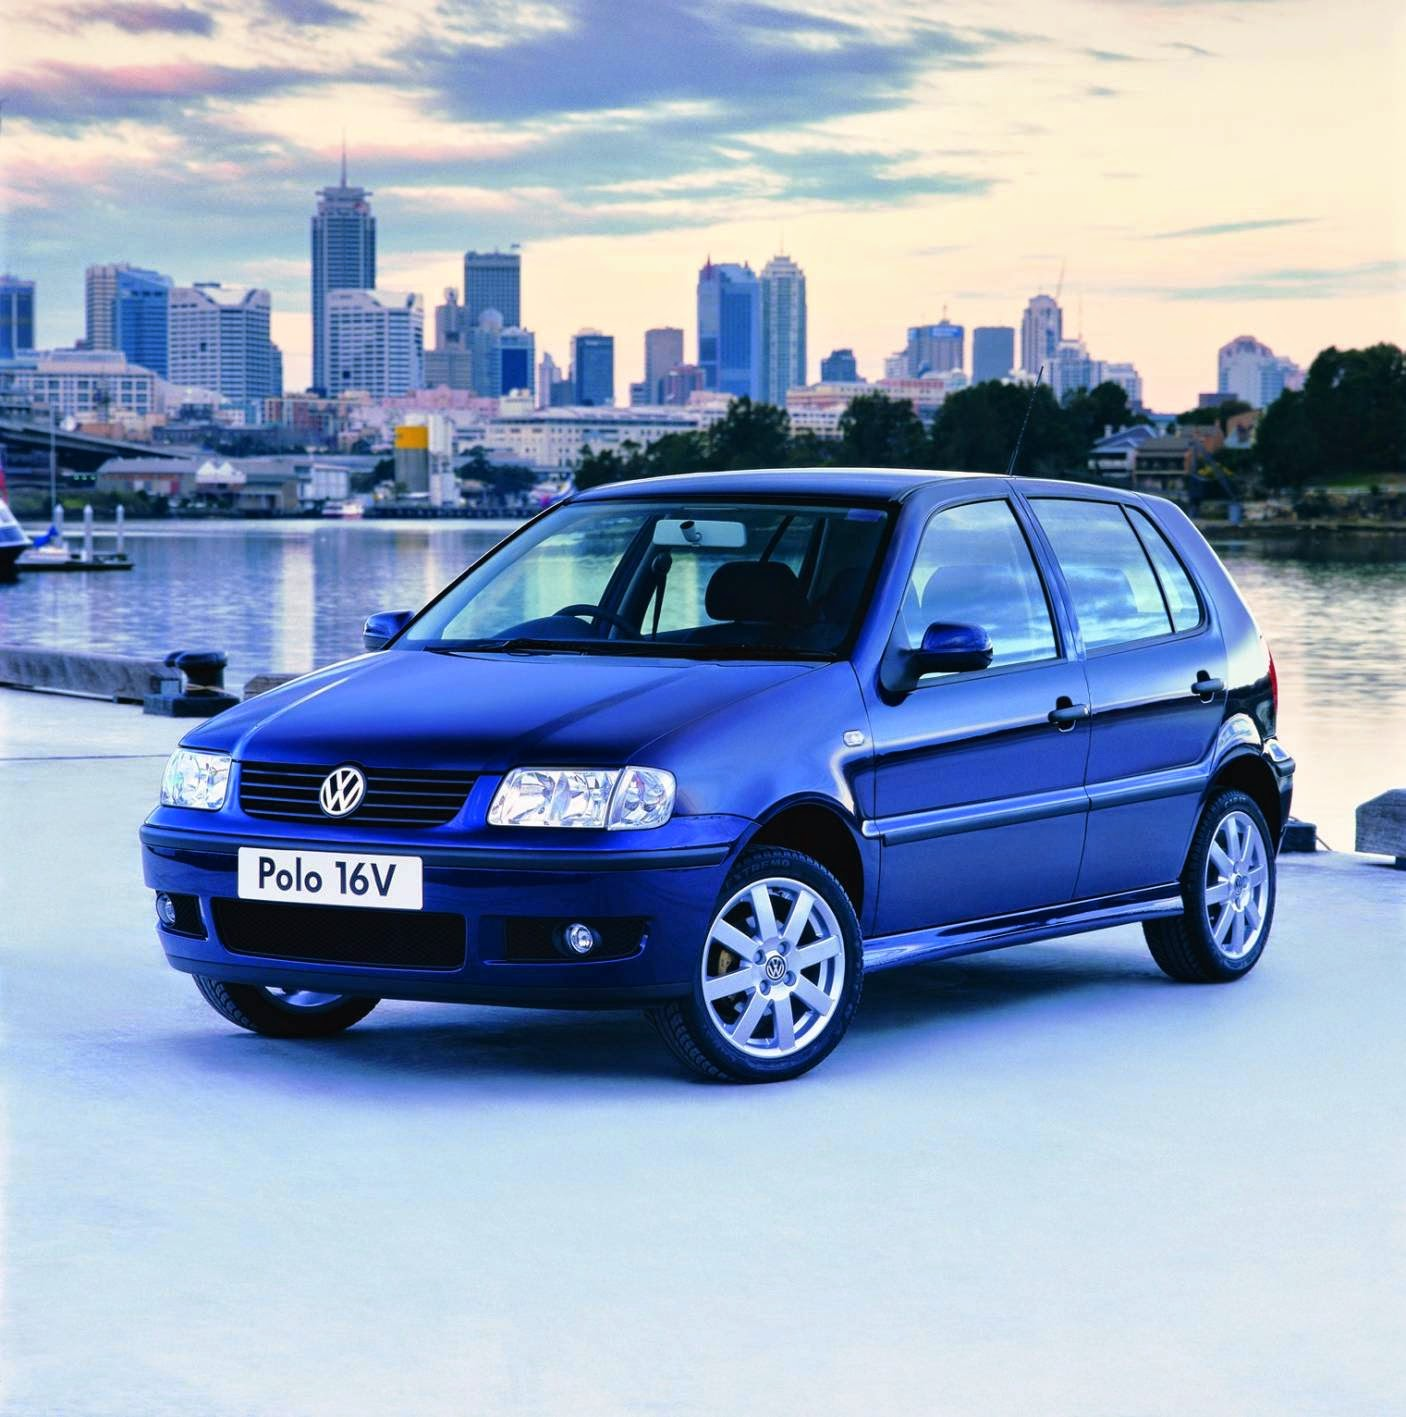 Volkswagen Polo 16v press photo at launch